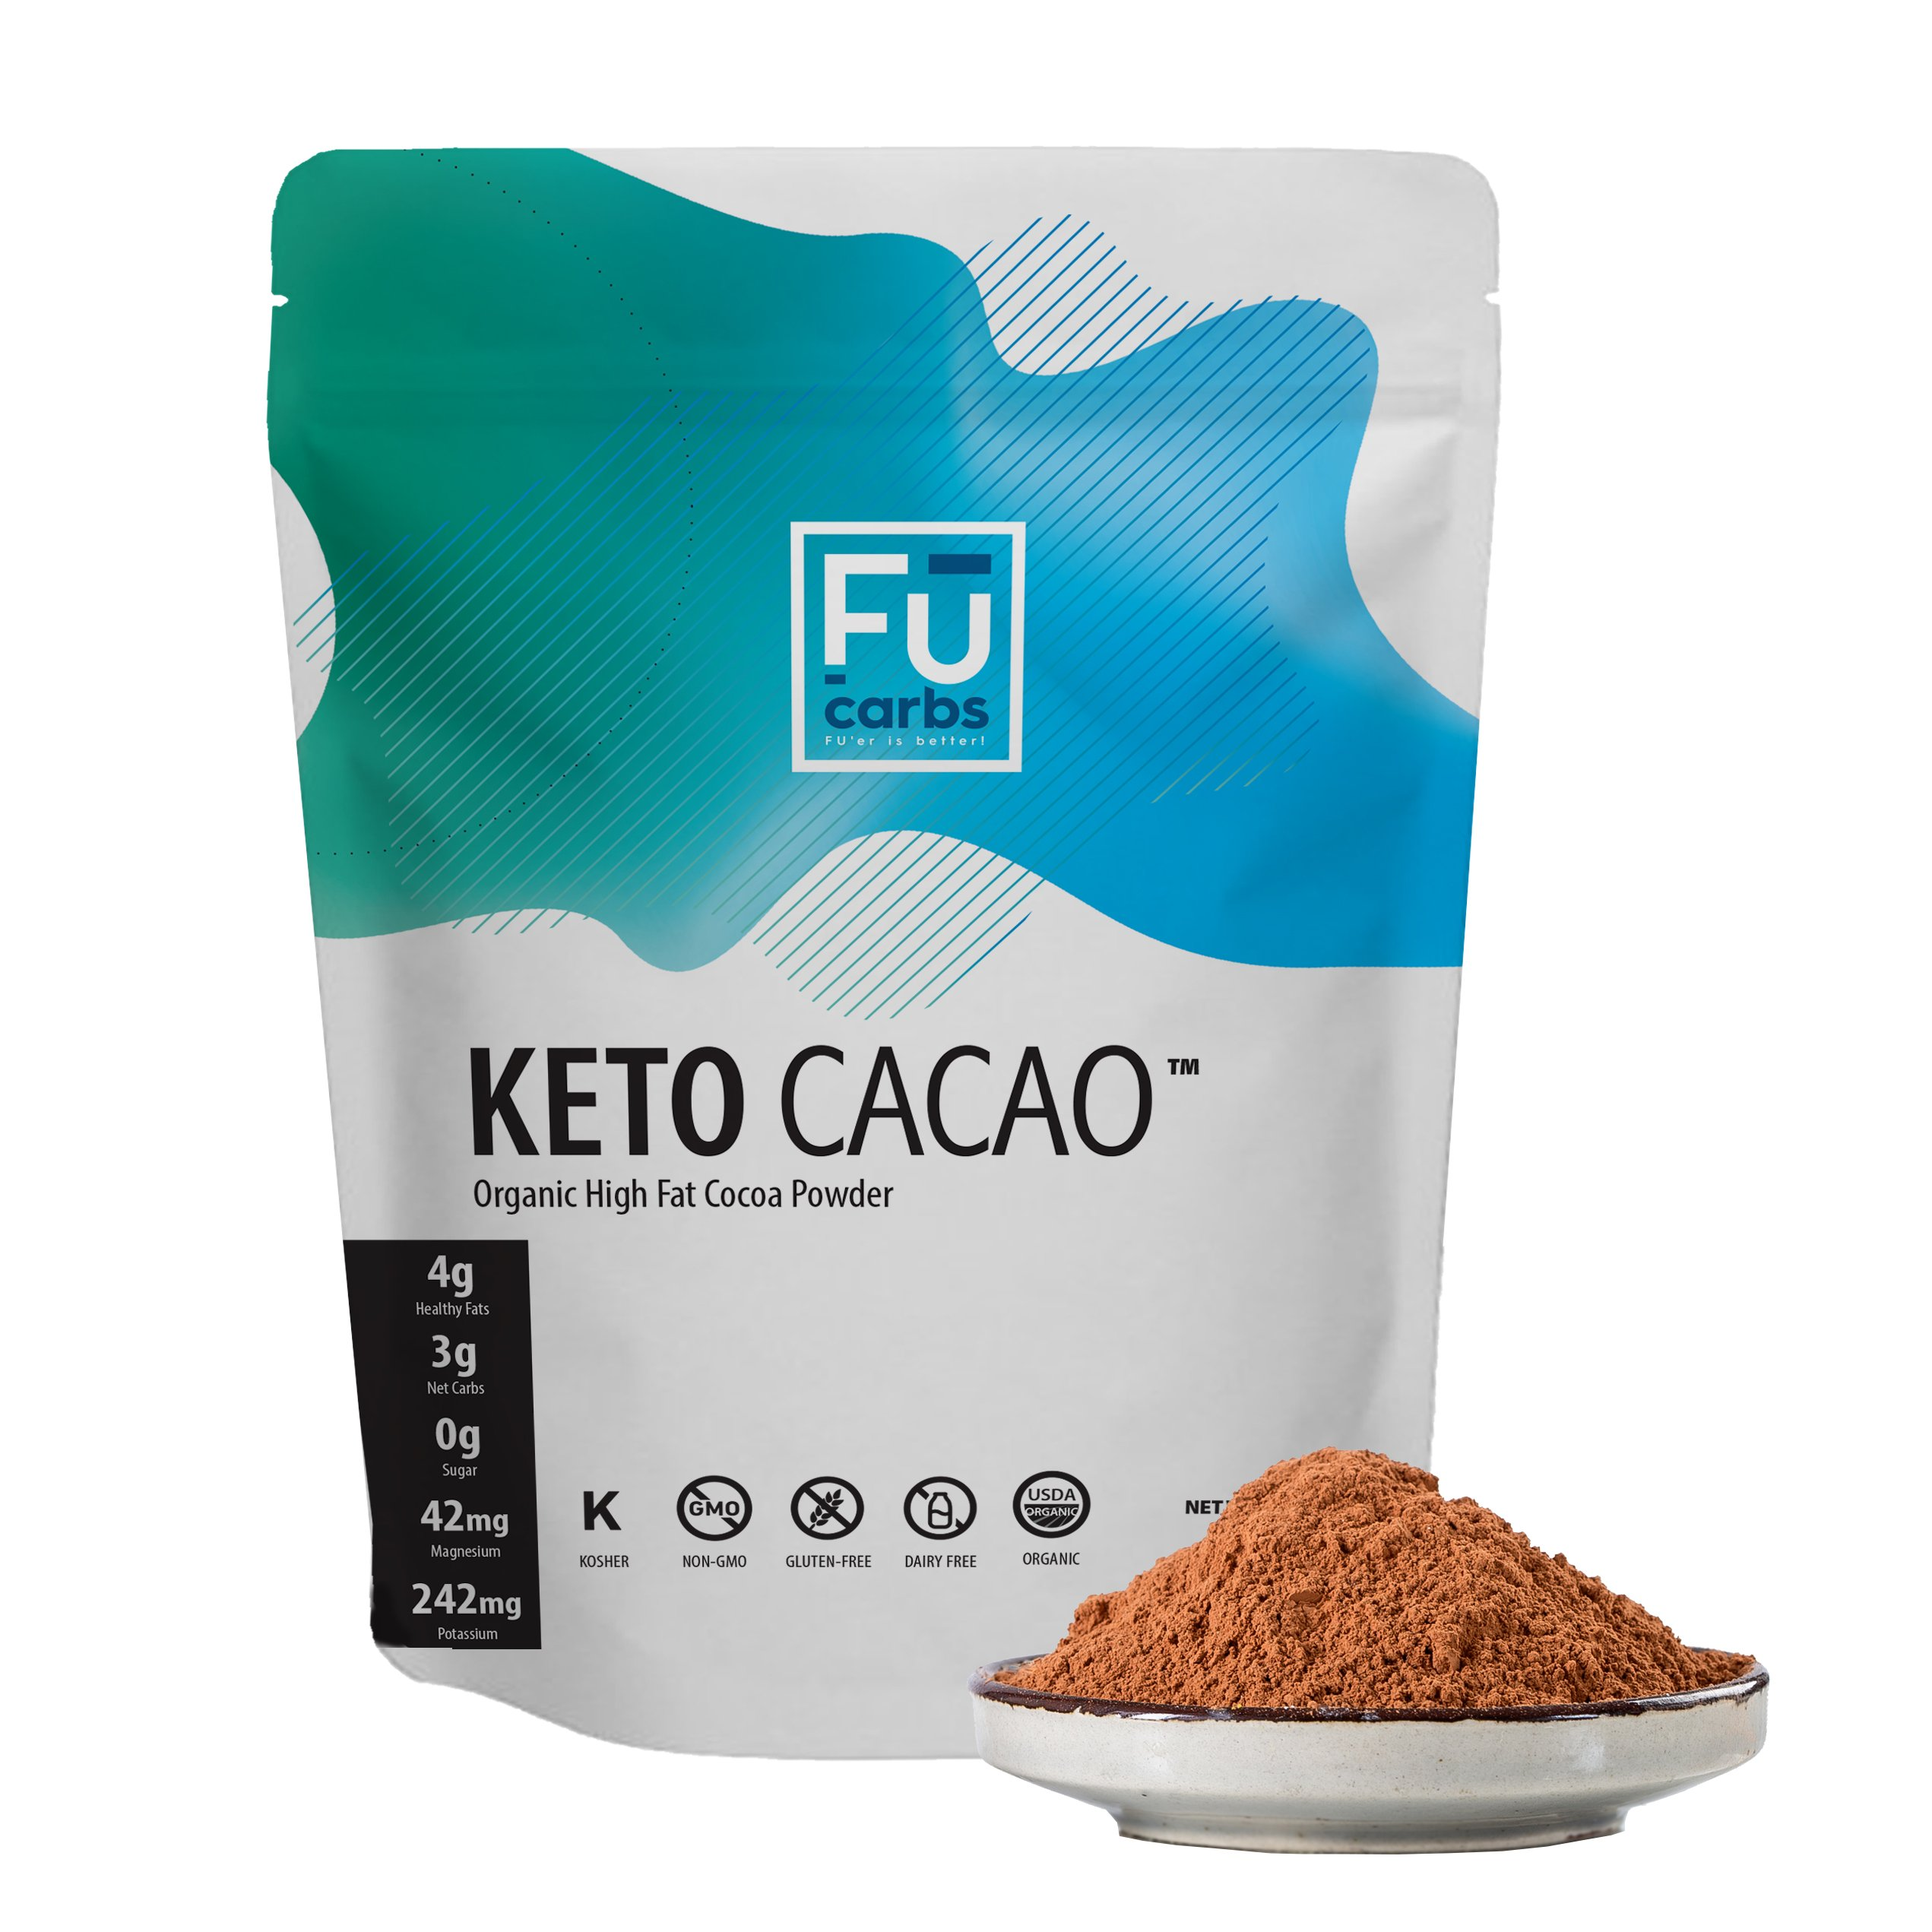 Fū Carbs Keto Cacao Powder - Low Carb & Certified Organic. Twice the Fat of other Brands' Cocoa Powder. Perfect for Coffee, Shakes, and Snacks to Enhance Ketogenic, Paleo, and Bulletproof diets. 1 LB